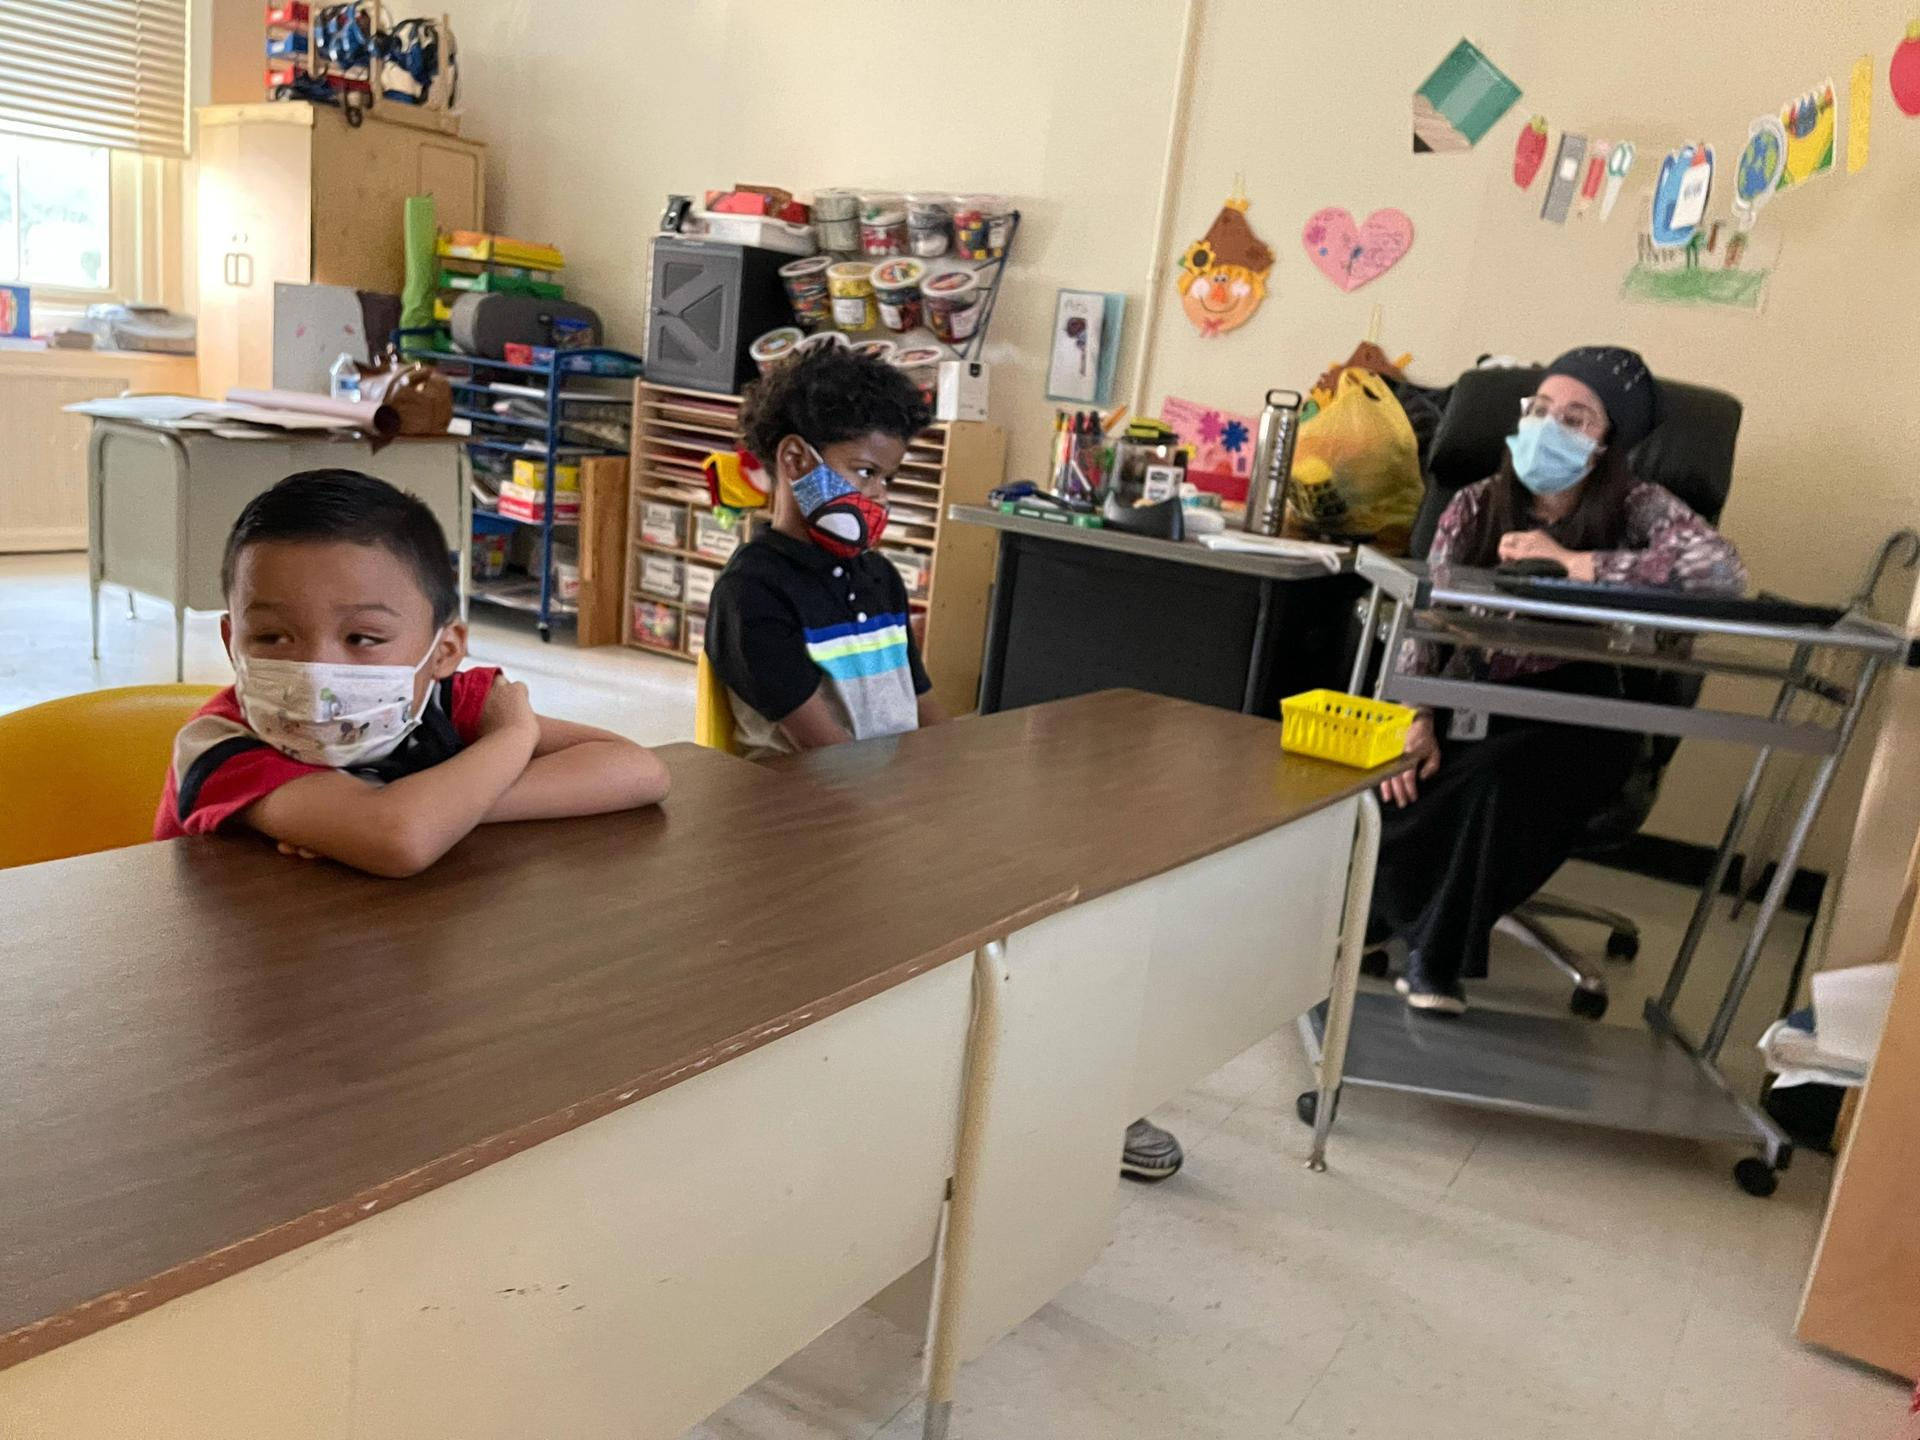 2 students sit at a desk with their masks on